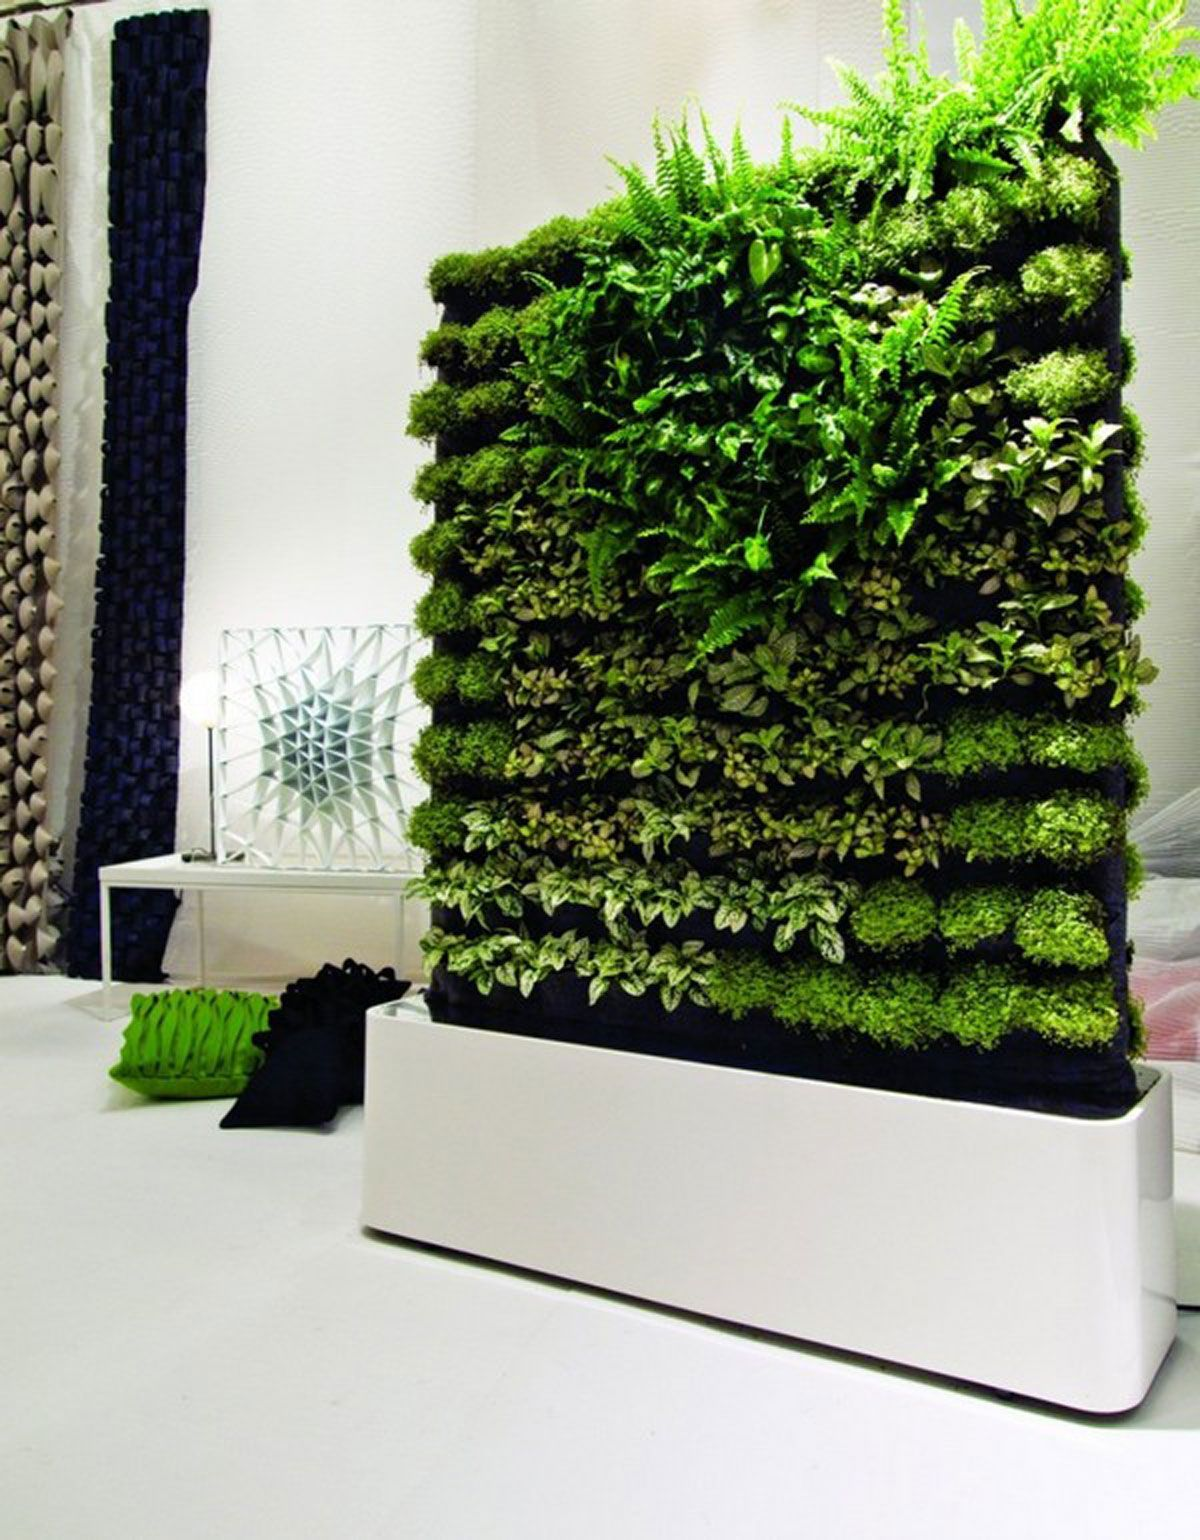 If You Live In A Small Apartment And Want Some Privacy Or Need A Creative Way To Separate Are Vertical Garden Indoor Vertical Garden Design Vertical Garden Diy